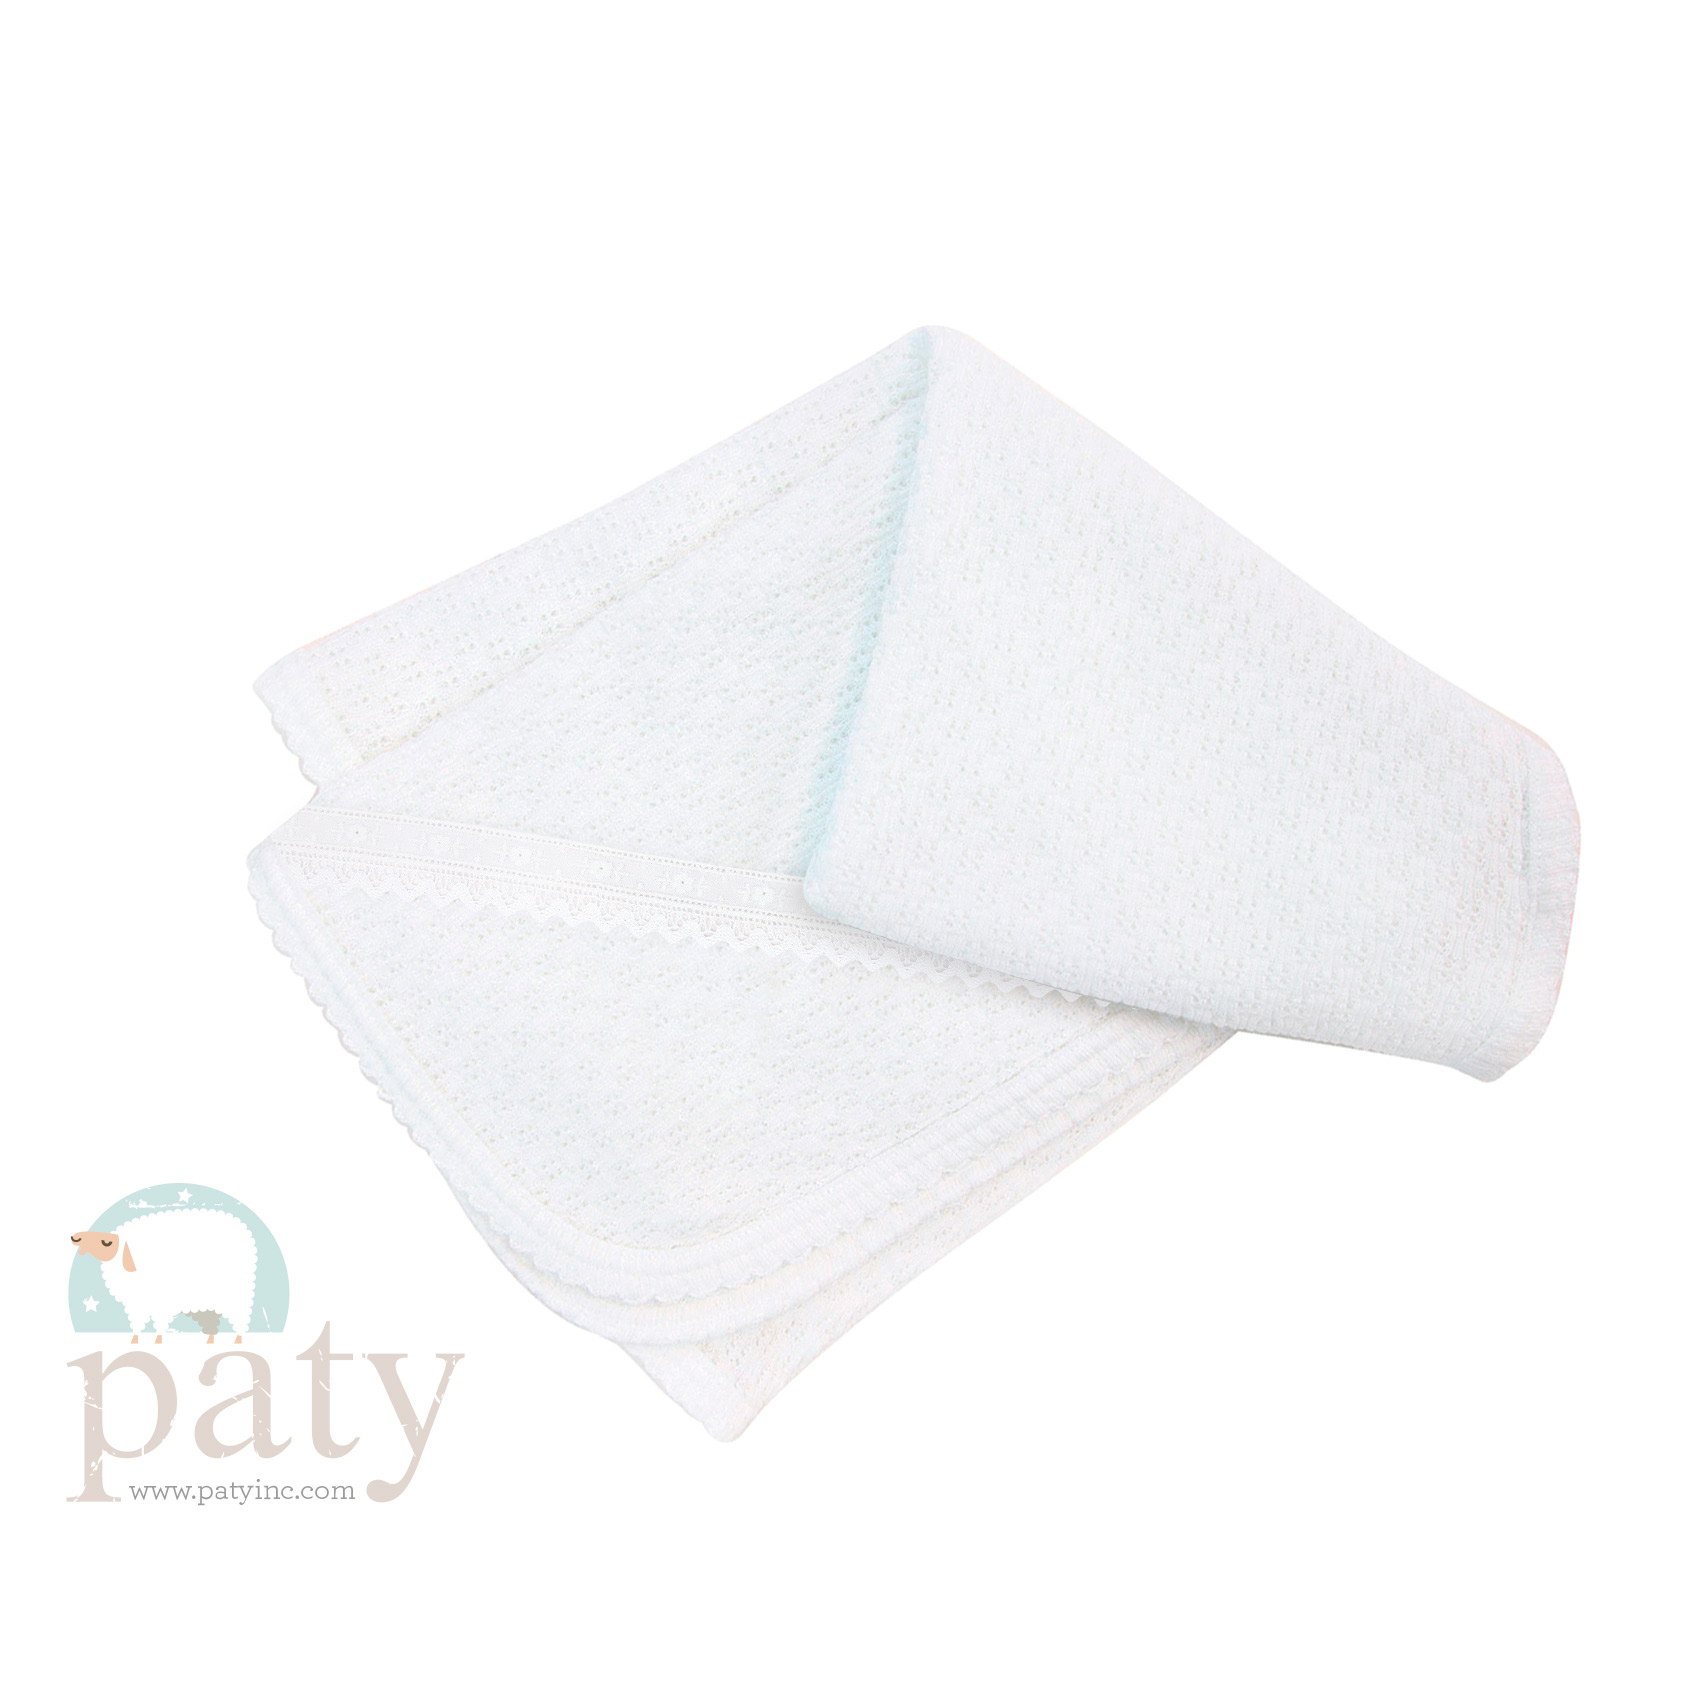 Paty Blanket with Beautiful White Lace